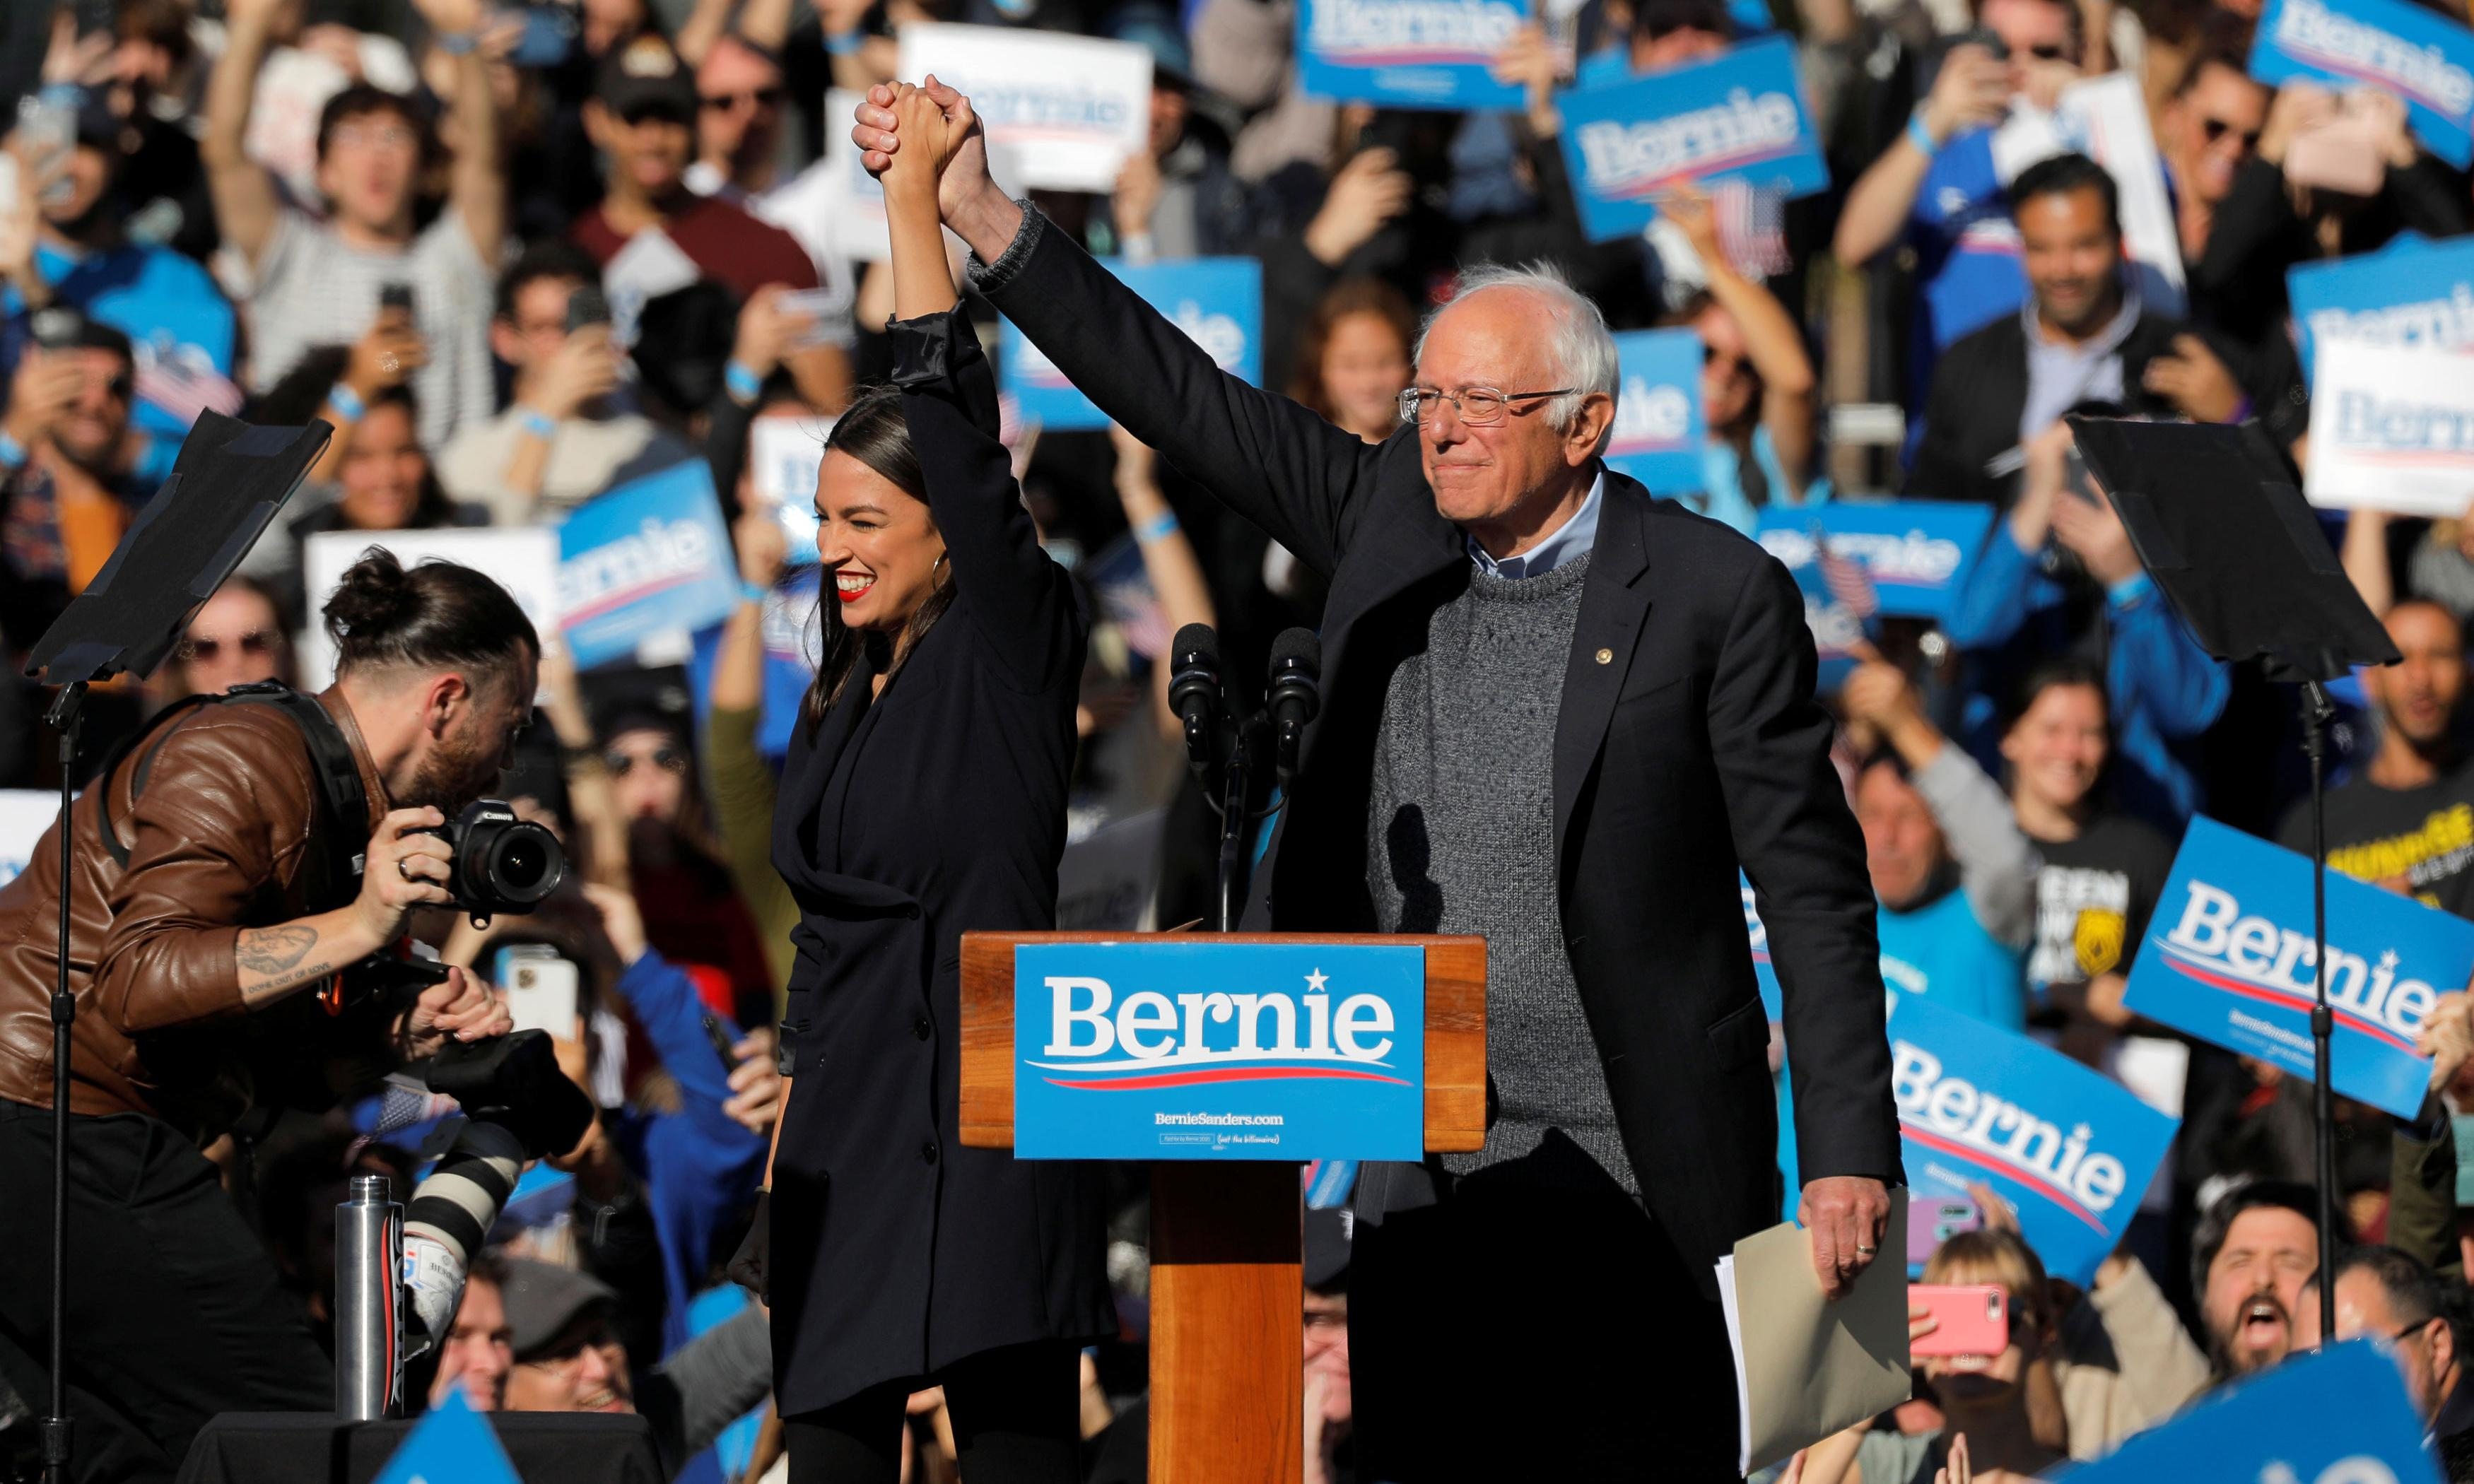 Ocasio-Cortez joins Bernie Sanders for comeback rally in New York